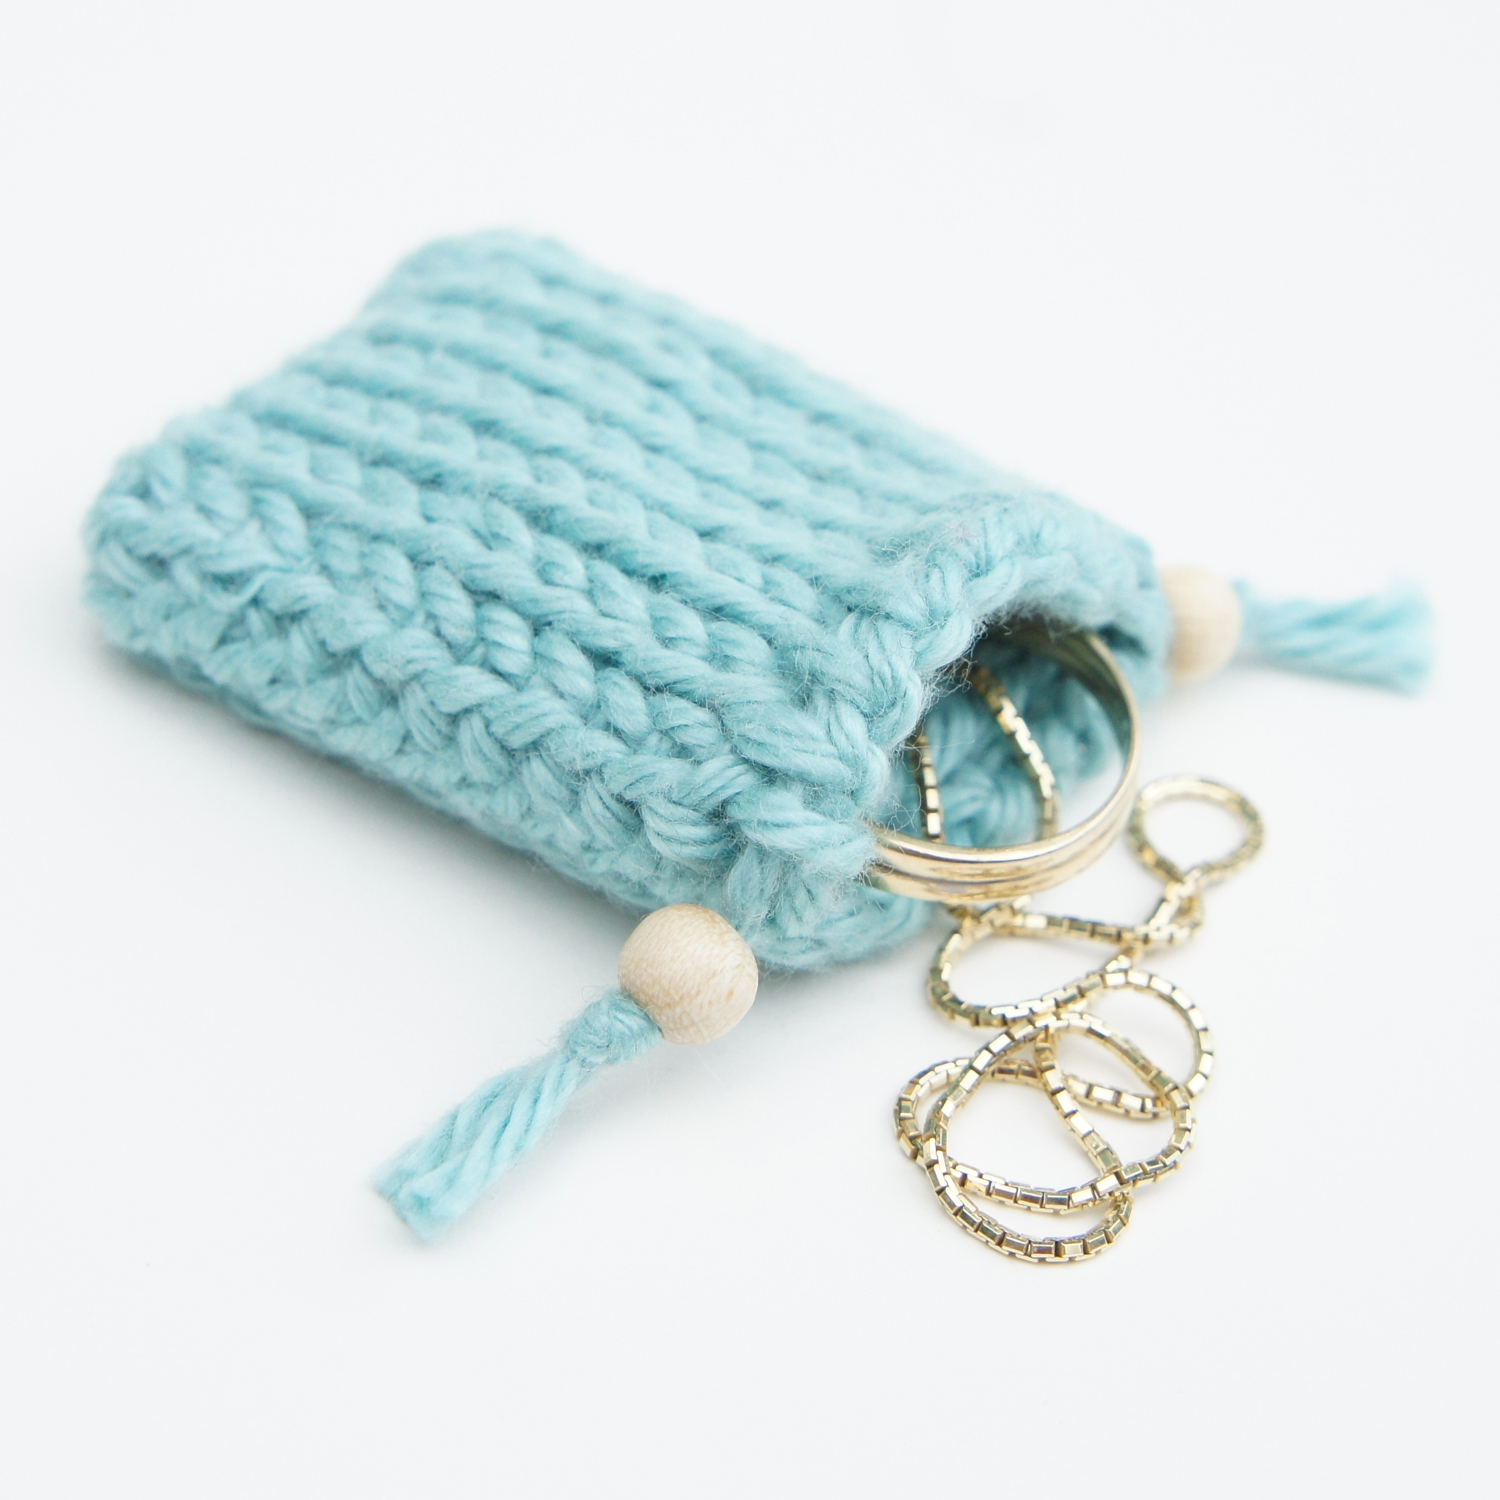 Small Crochet Pouch Pattern : ... cute design shop: new tunisian crochet pattern - drawstring gift bags